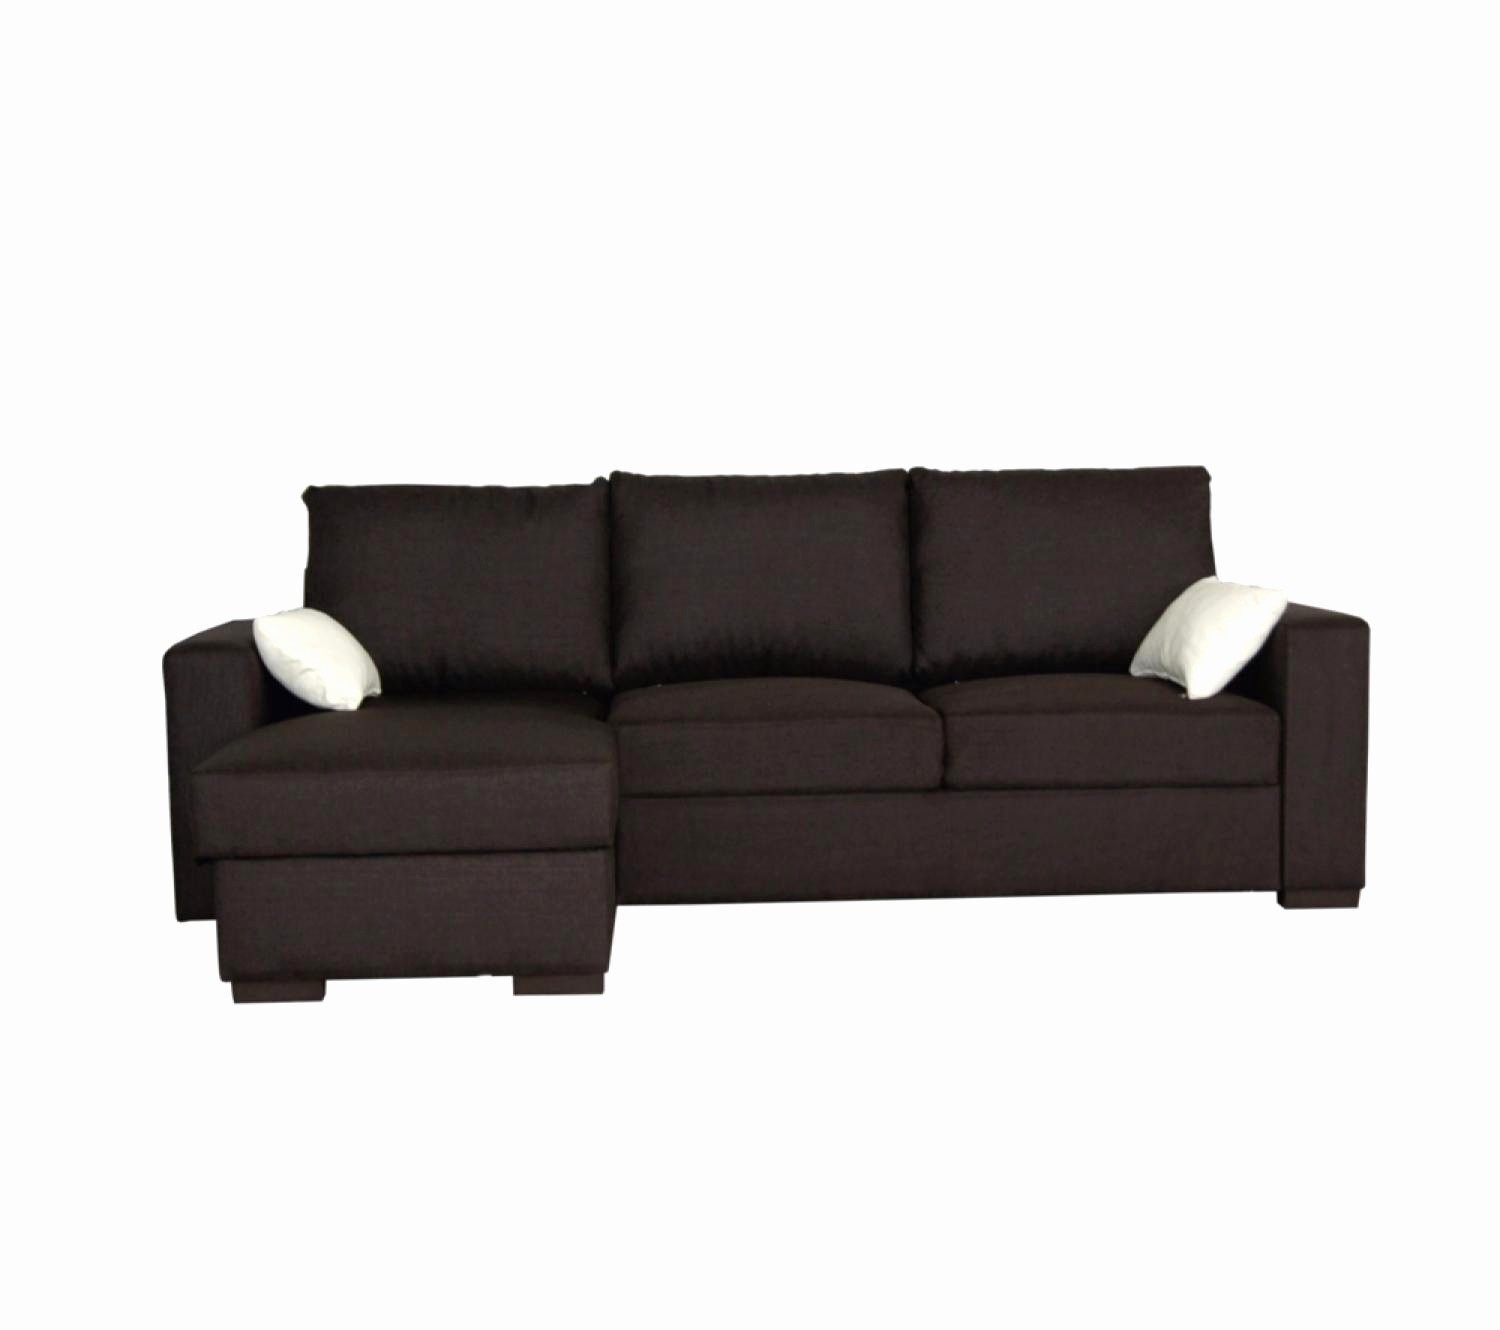 Fly Canape Lit Joli Canape Angle Caravane Awesome Canape Convertible Fly Banquette Lit